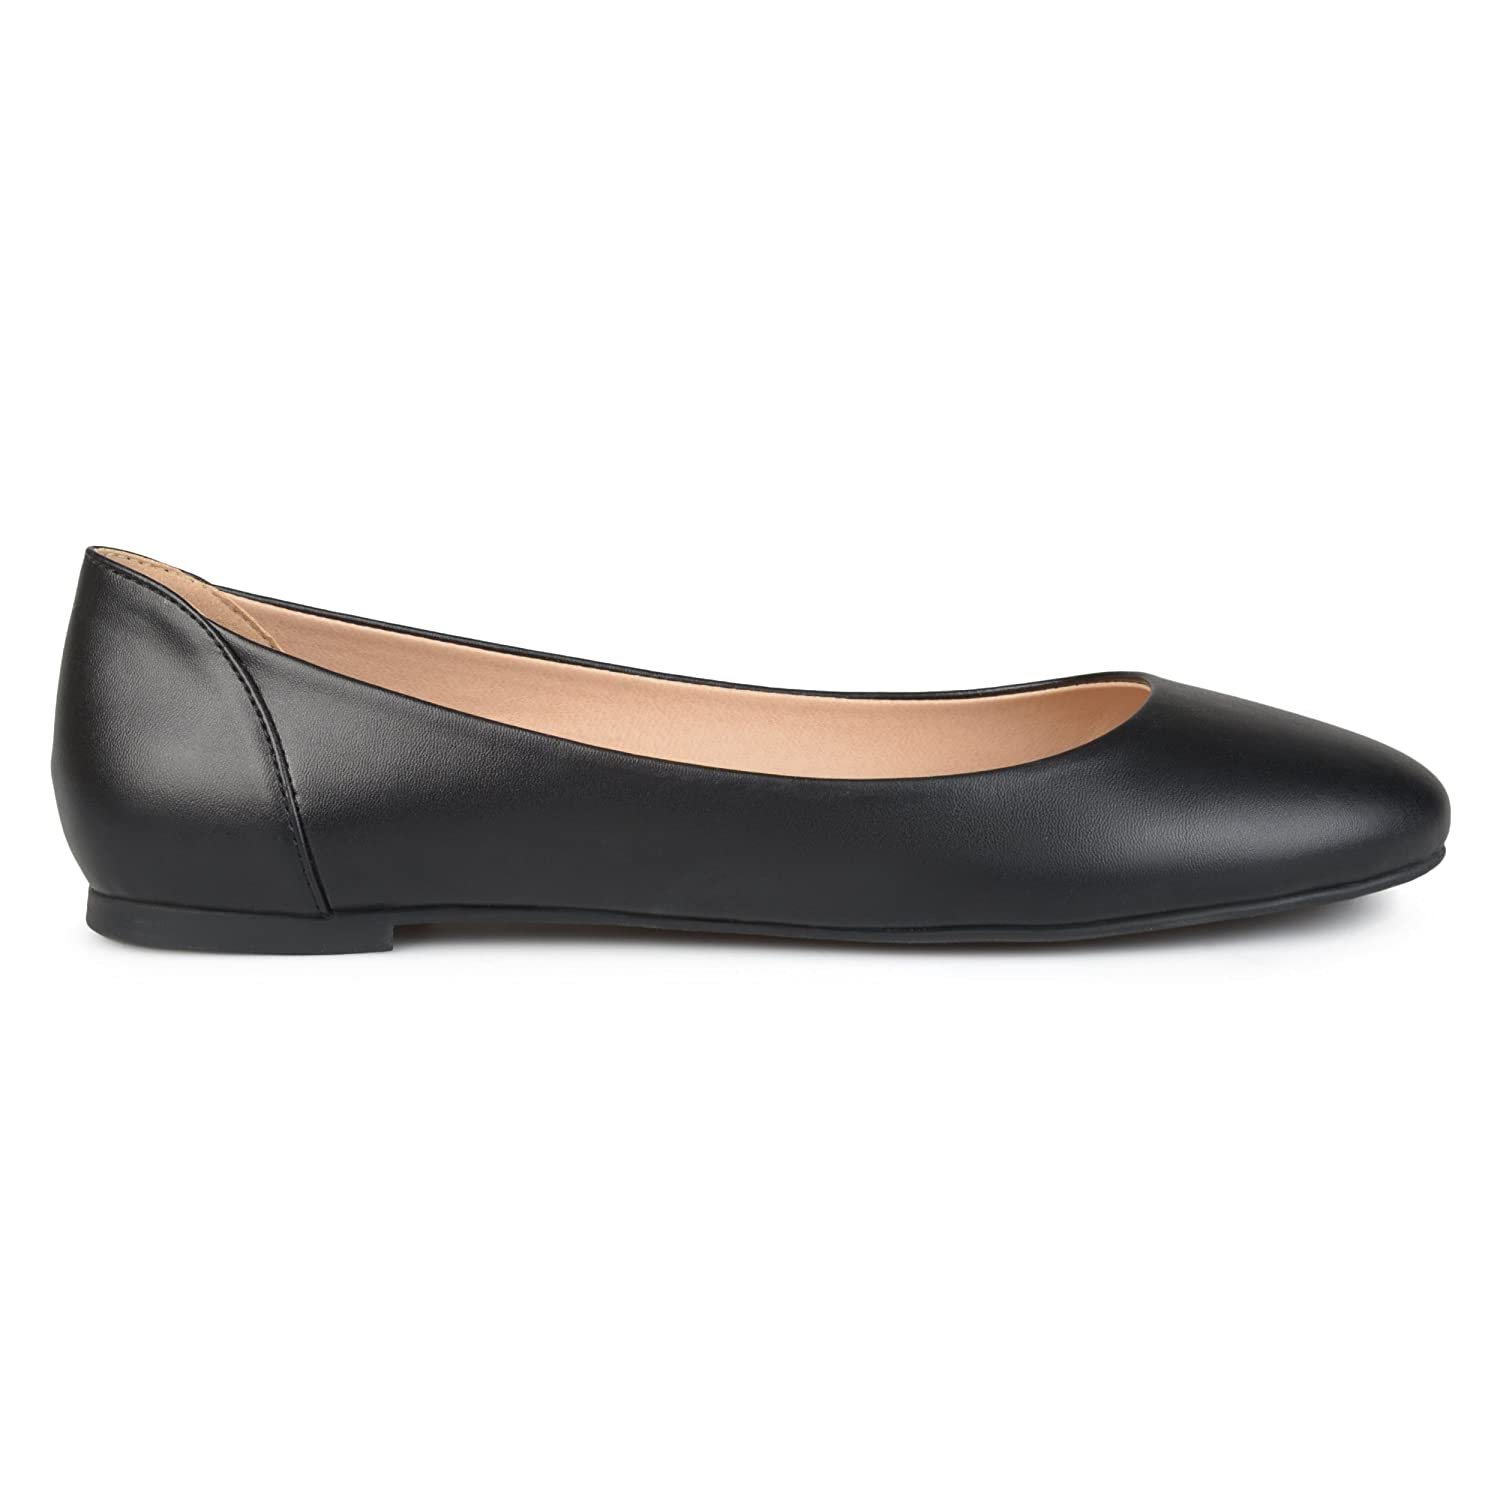 Brinley Co Womens Comfort Sole Faux Leather Round Toe Flats B073VT5RLX 6.5 B(M) US|Black